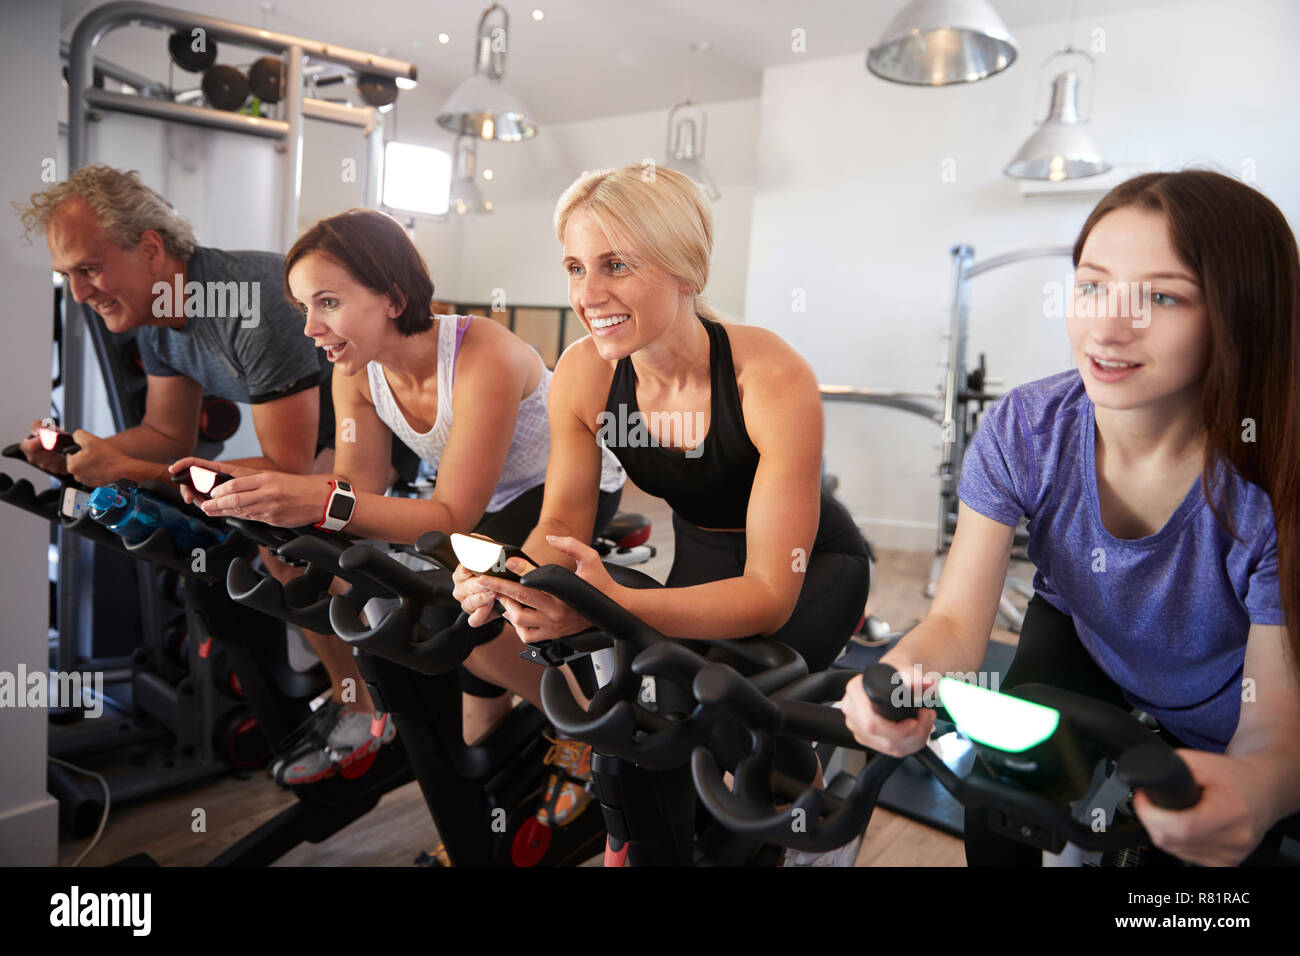 Group Taking Spin Class In Gym Stock Photo